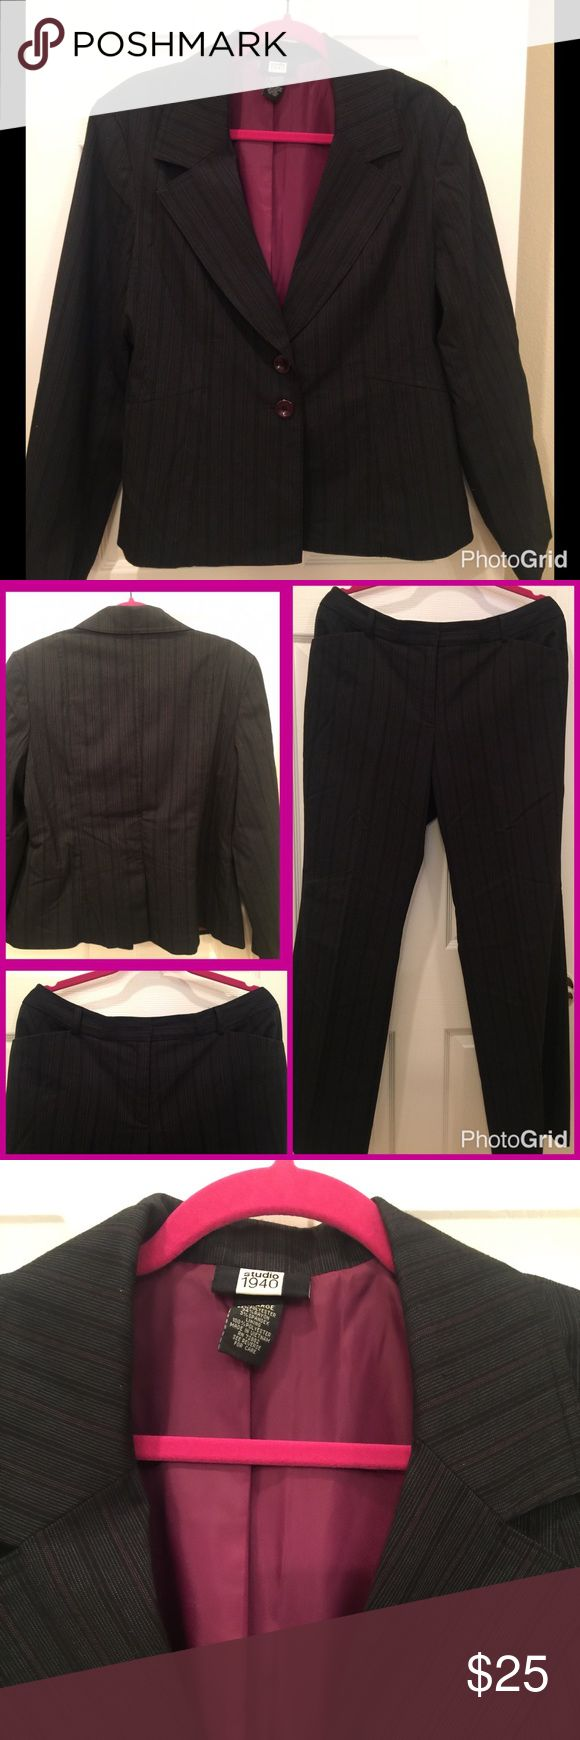 Studio 1940 Dark Gray Ladies Business Suit Size 14 Fully lined pants suit in good condition.  Pink pin stripes on dark gray. Studio 1940 Other